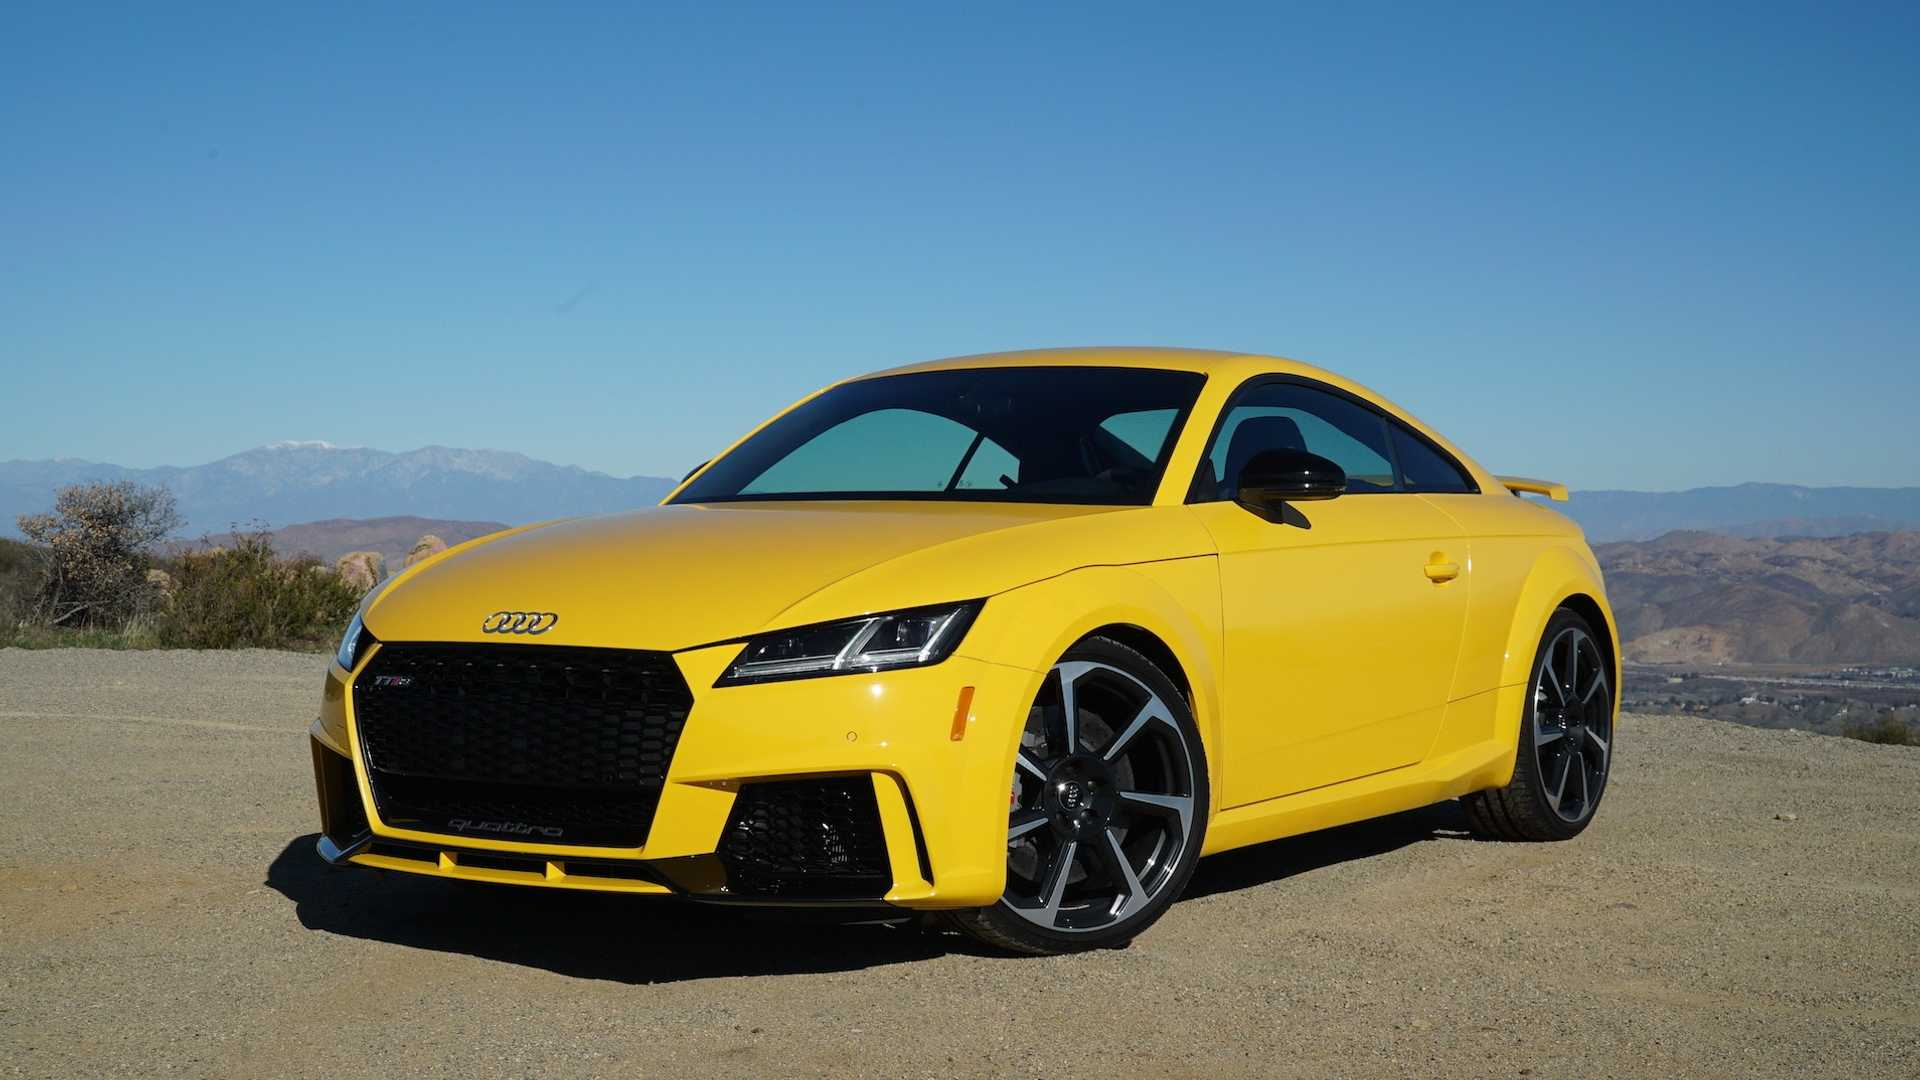 25 Gallery of New Audi Tt Rs Plus 2019 Price And Review Spy Shoot by New Audi Tt Rs Plus 2019 Price And Review